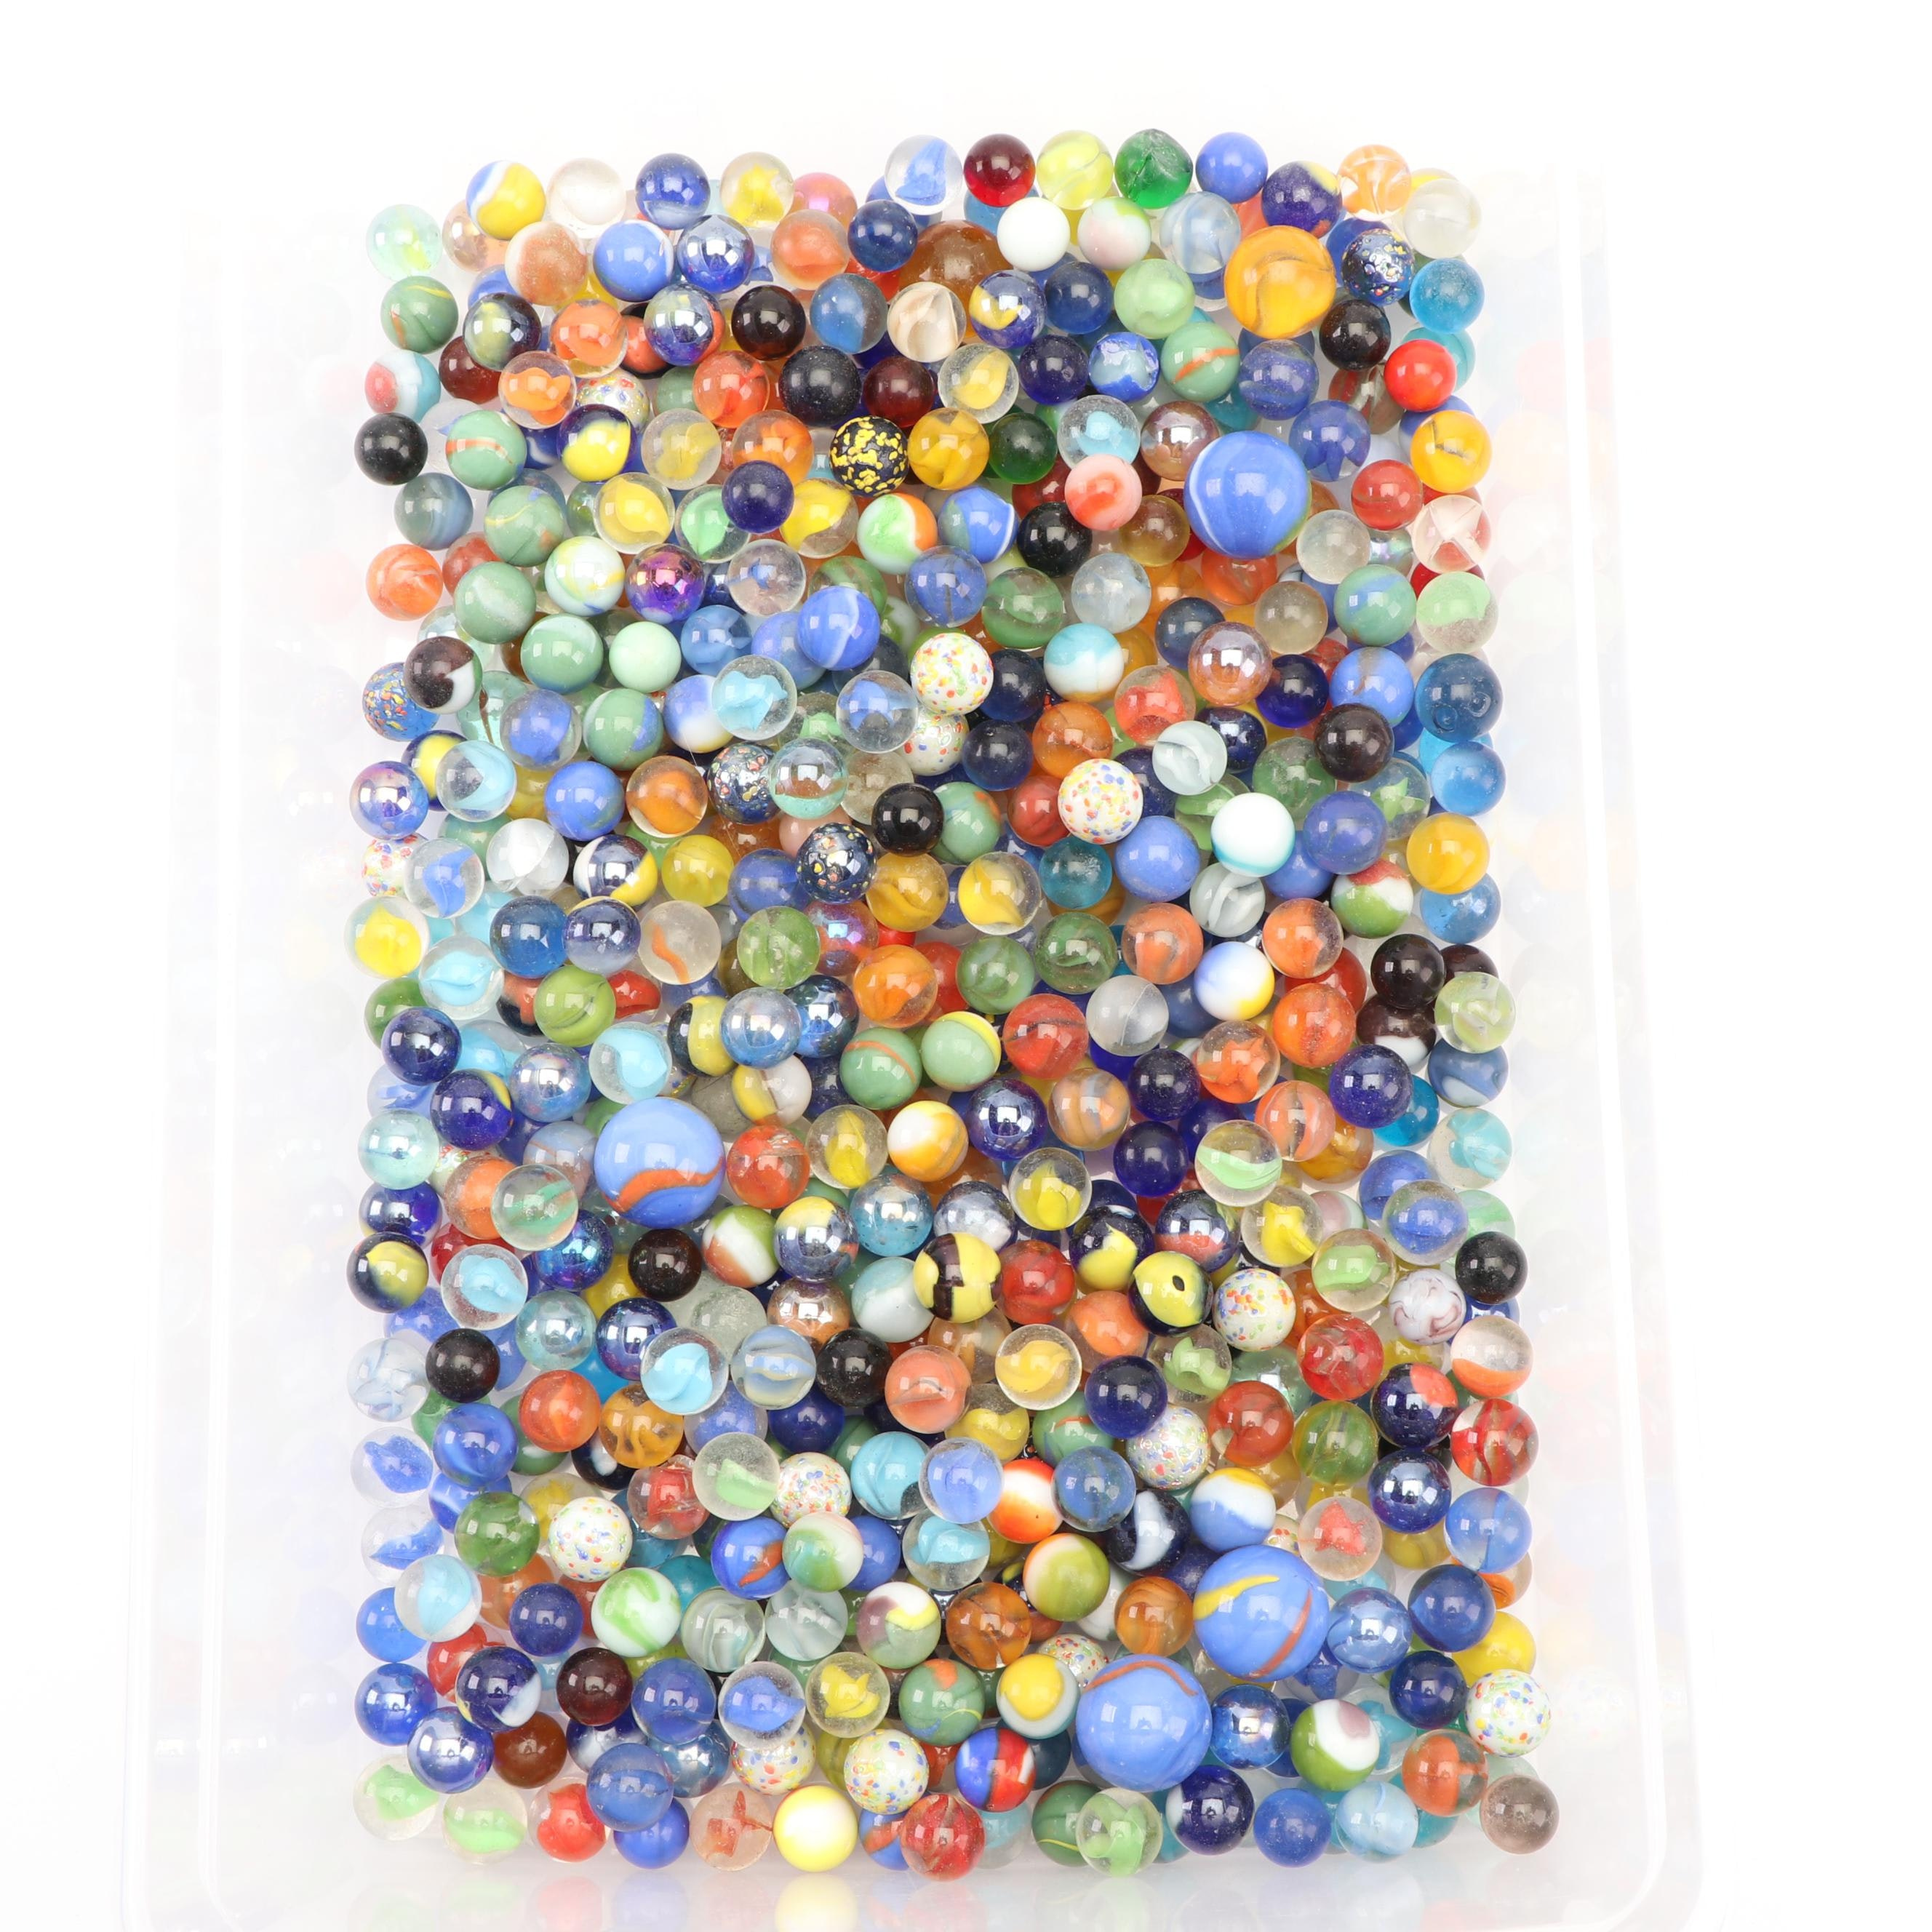 Collection of Hand Blown Glass Marbles